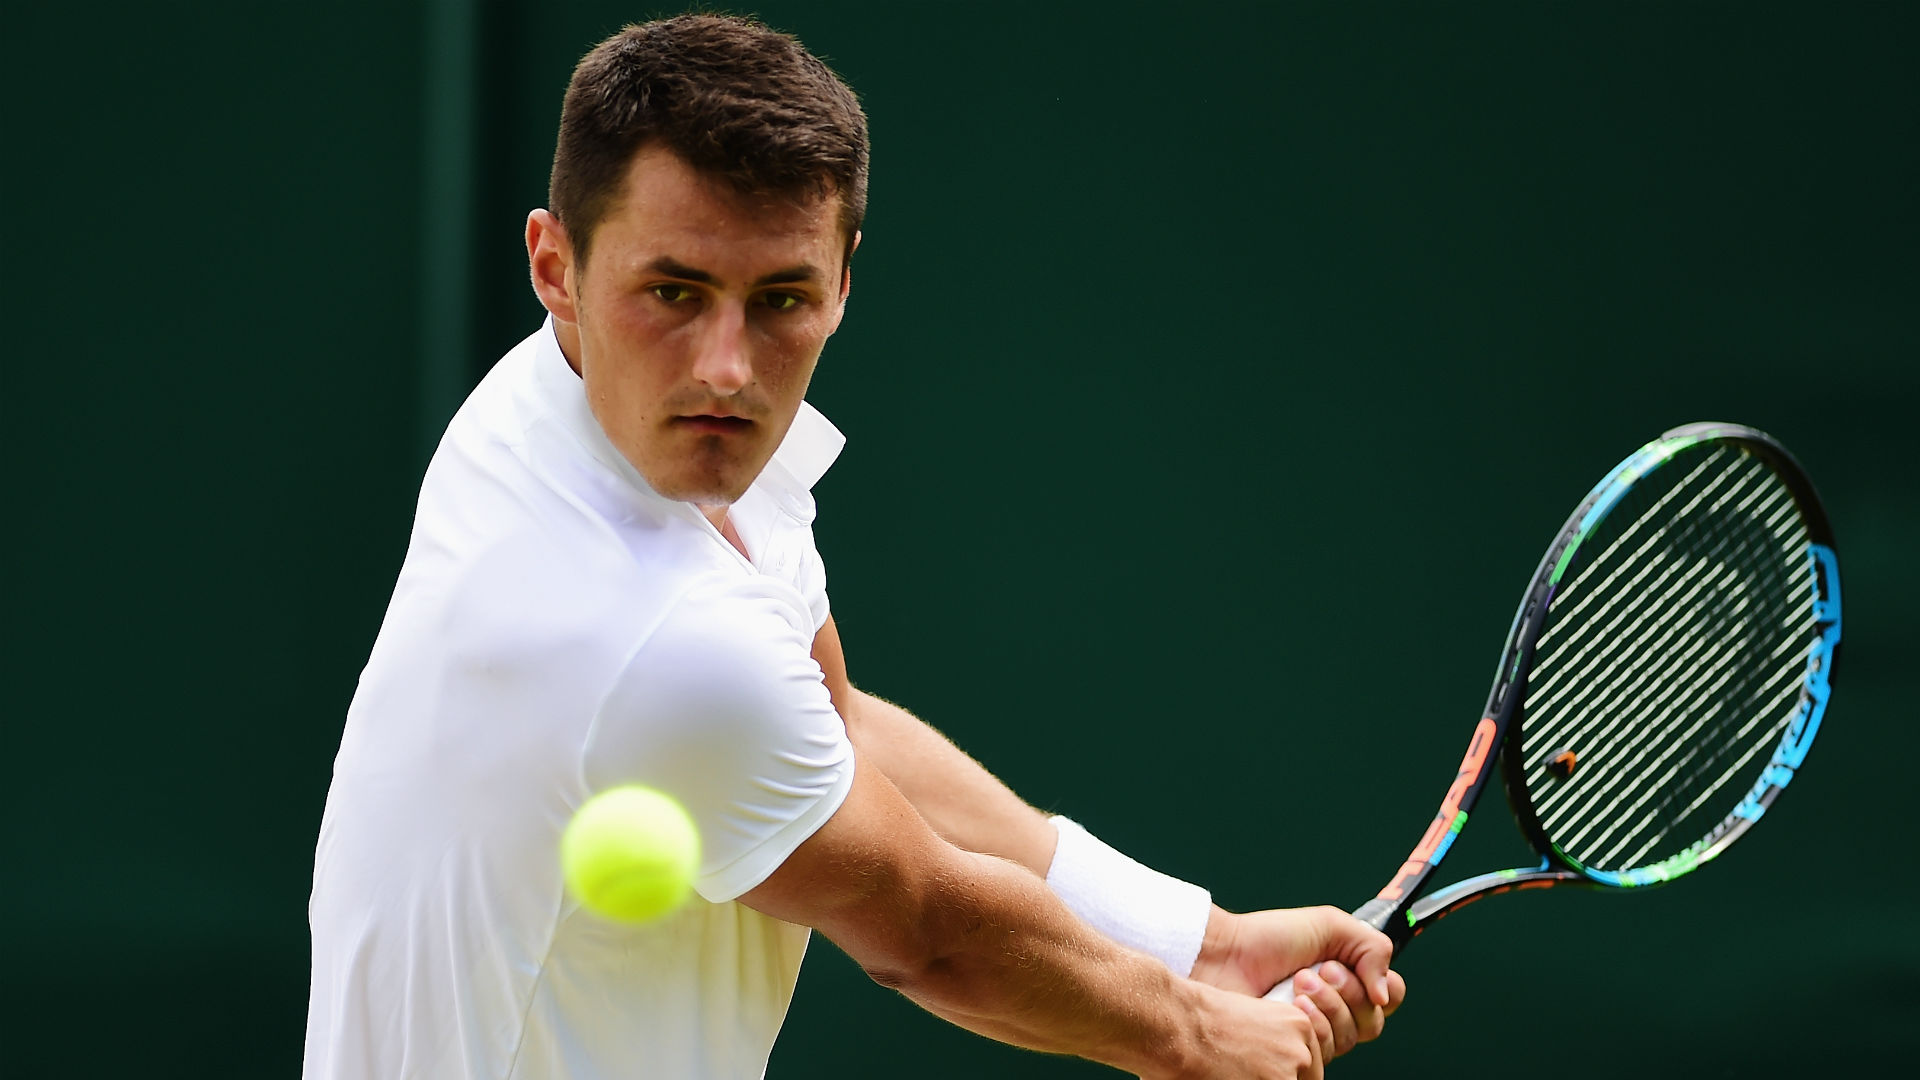 Tomic-Bernard-071615-usnews-getty-ftr